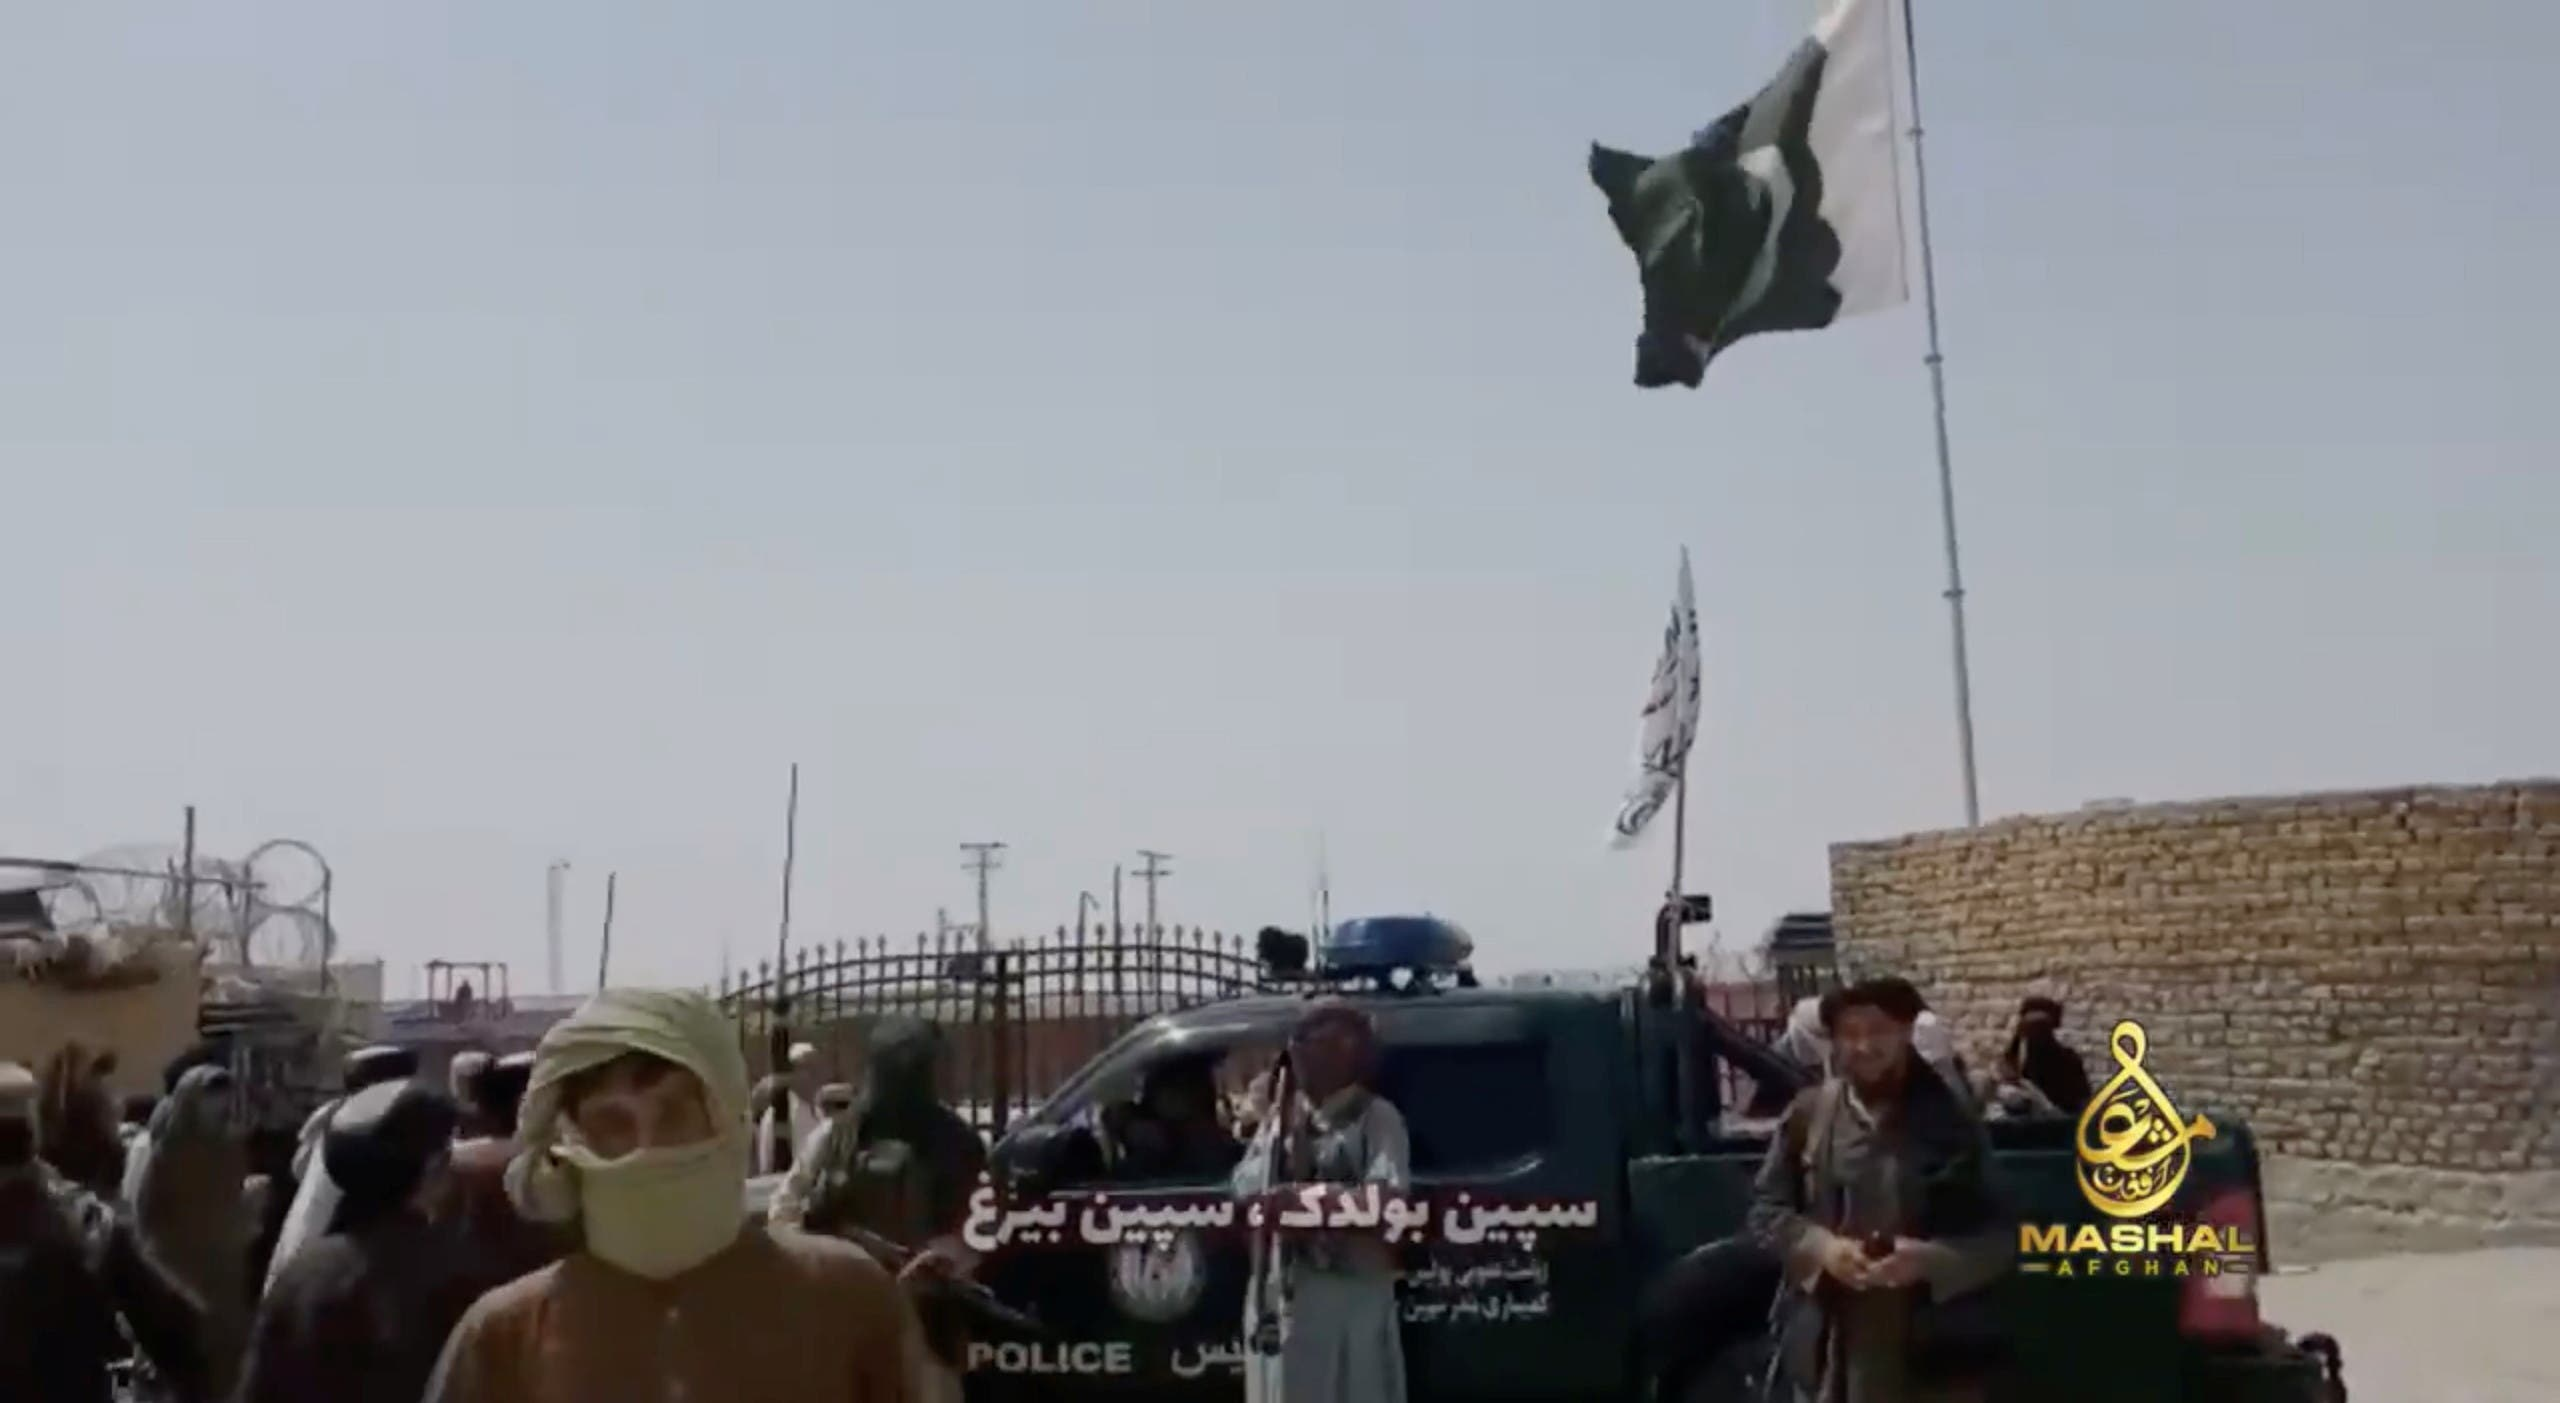 People stand in front of a vehicle as an Islamic Emirate of Afghanistan and a Pakistan's flag flutter in front of the friendship gate of Afghanistan and Pakistan at the Wesh-Chaman border crossing, Spin Boldak, Afghanistan July 14, 2021, in this screen grab obtained from a video. (Reuters)